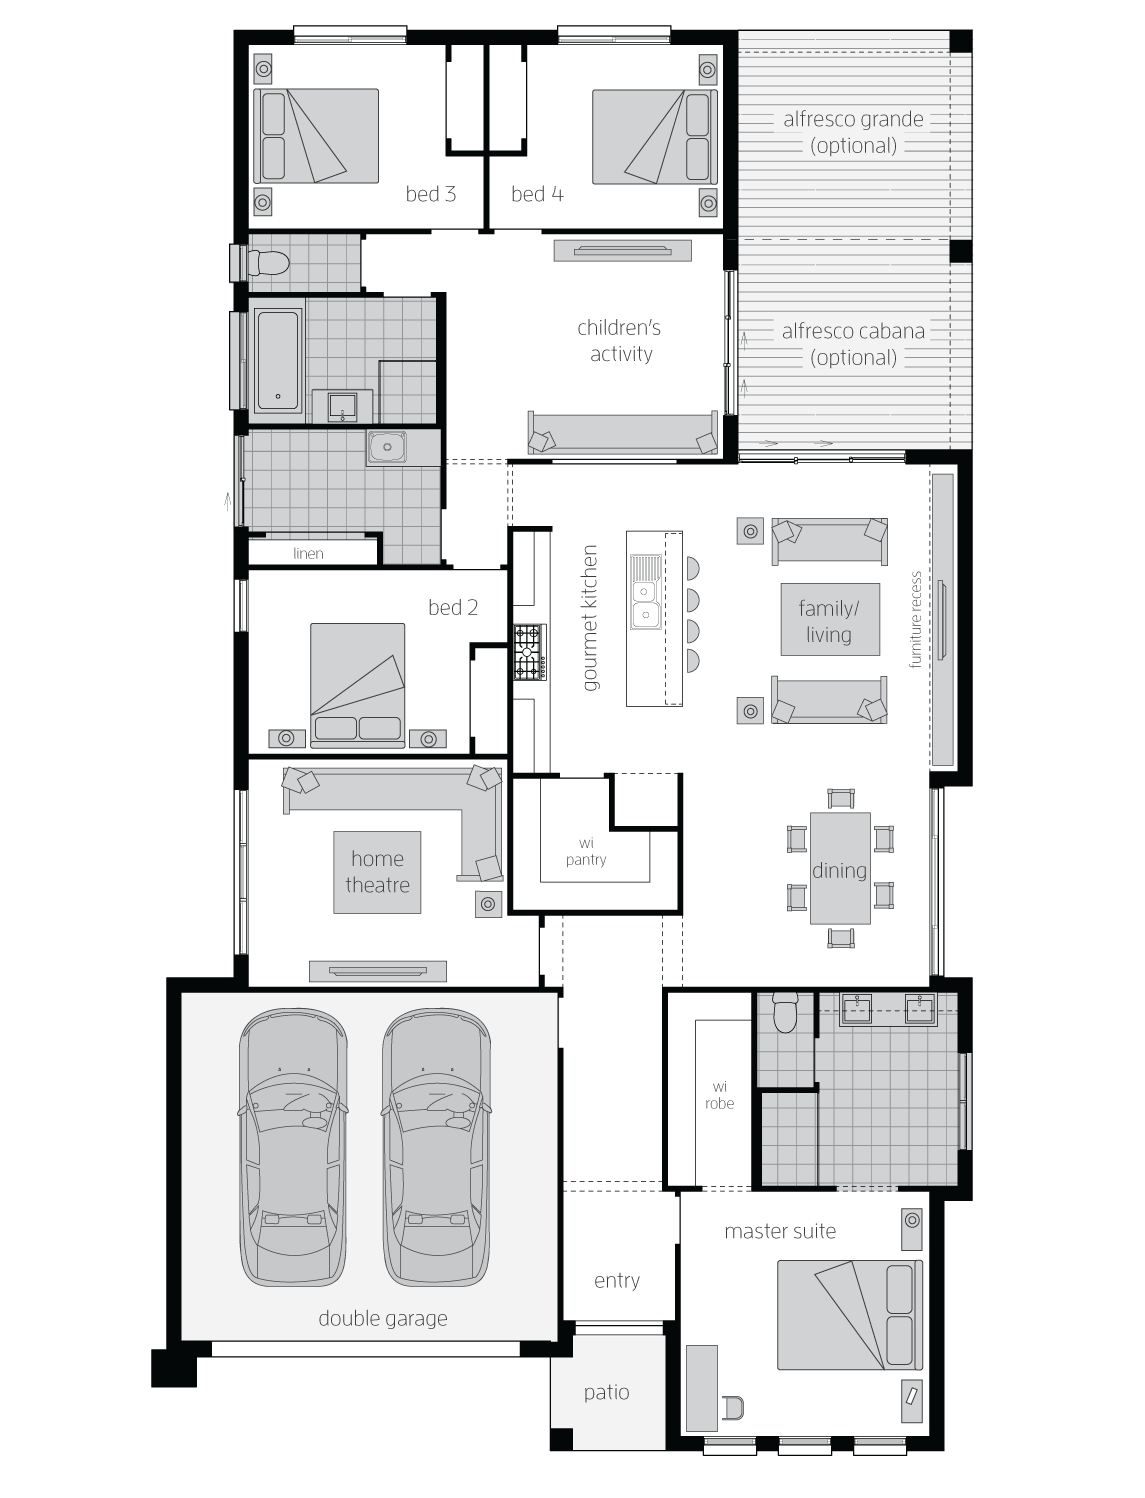 Veuve Executive Standard floorplan